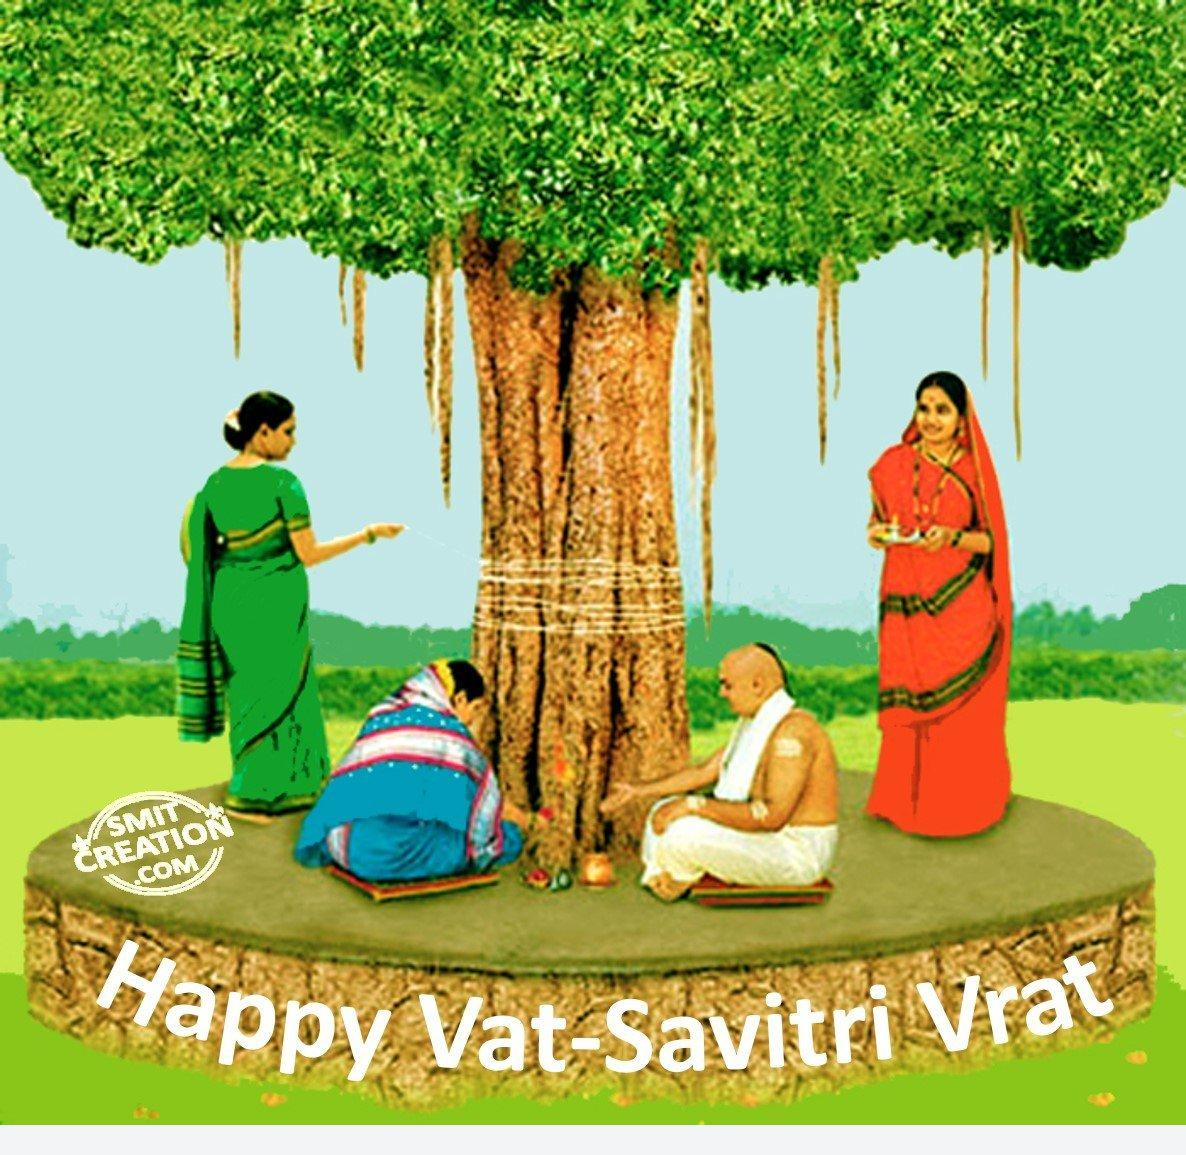 Happy Vat-Savitri Vrat - SmitCreation.com